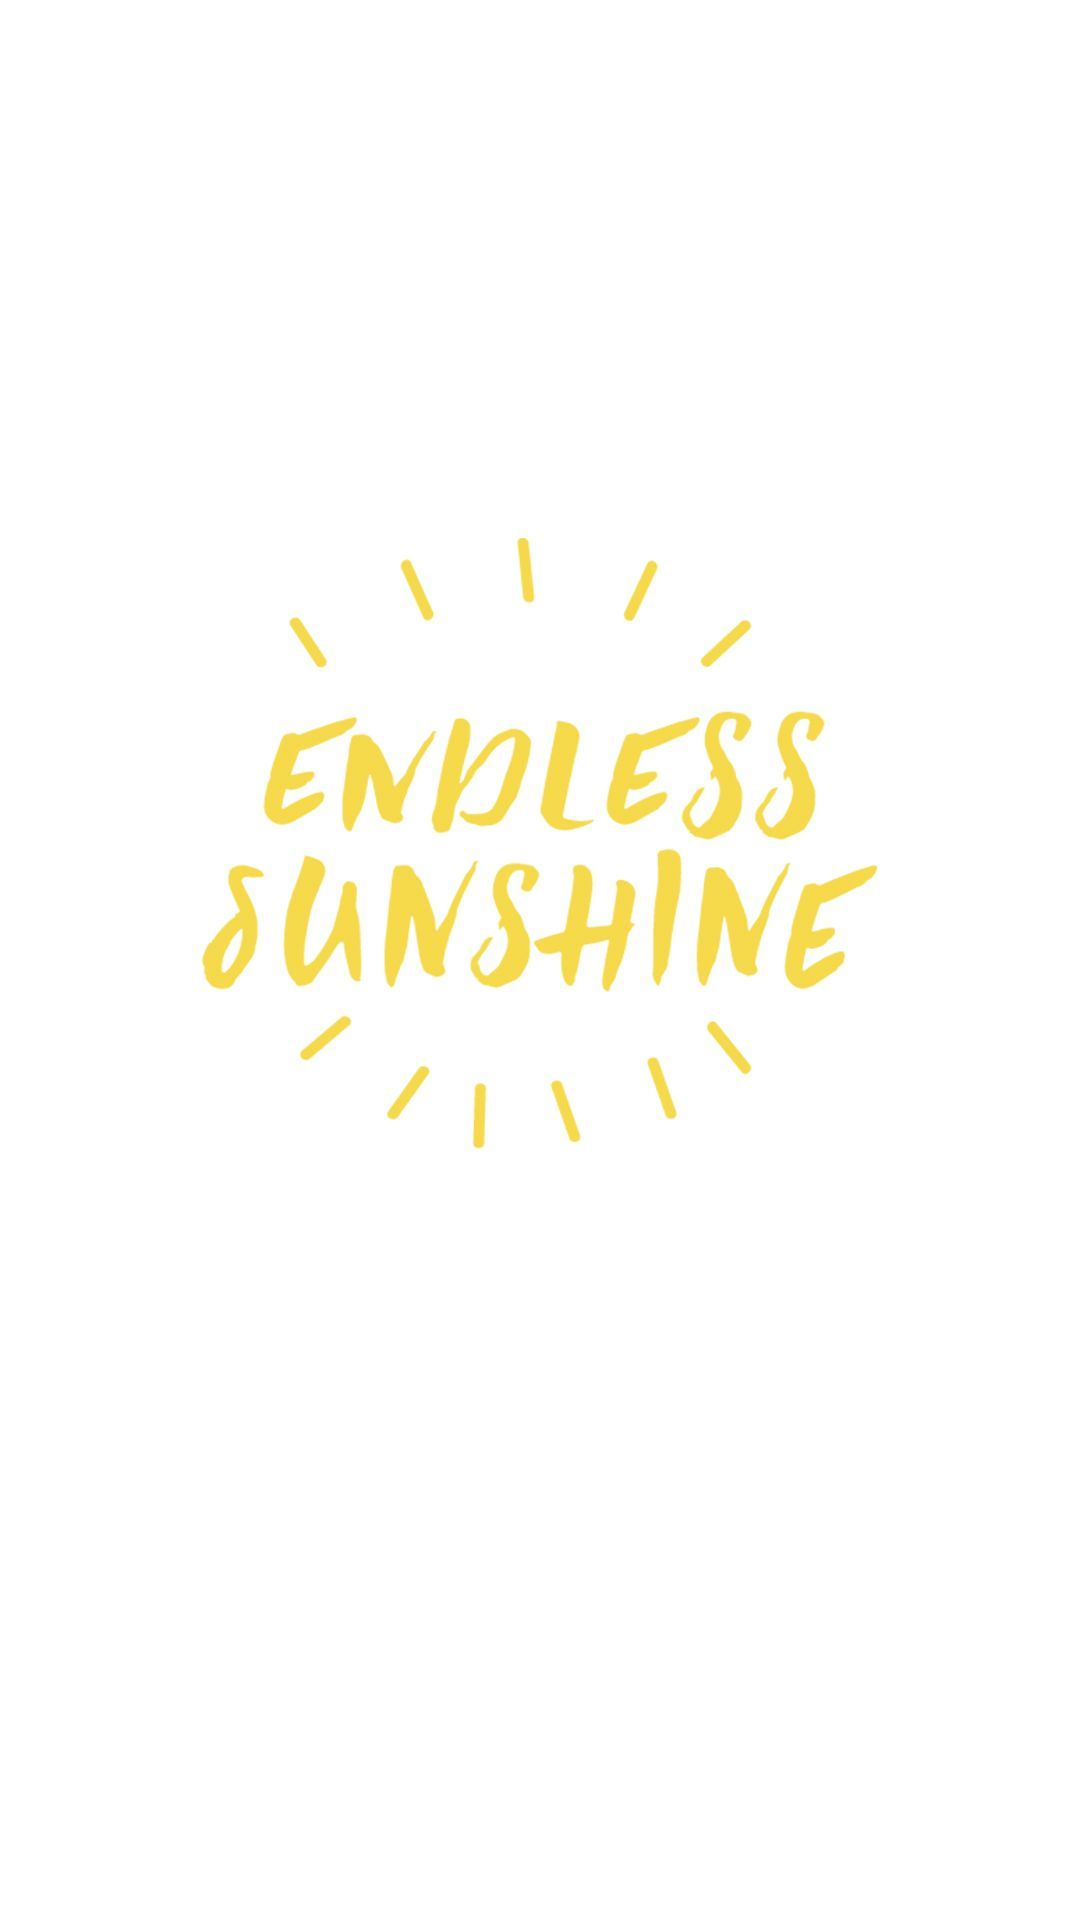 3 Ways to Add Endless Sunshine to Your Day For as long as I can remember, I have always been a glass half full kind of girl. If a situation is negative, I immediately think of 5 positive scenarios. Always turning a negative situation into a positive is kind of my specialty. As I\u2019ve gotten older, I have figured out there is actually a bit of a process I use to find the sunshine in my everyday. Sunshine to me means a few different things! For one, I love the color yellow and that\u2019s know